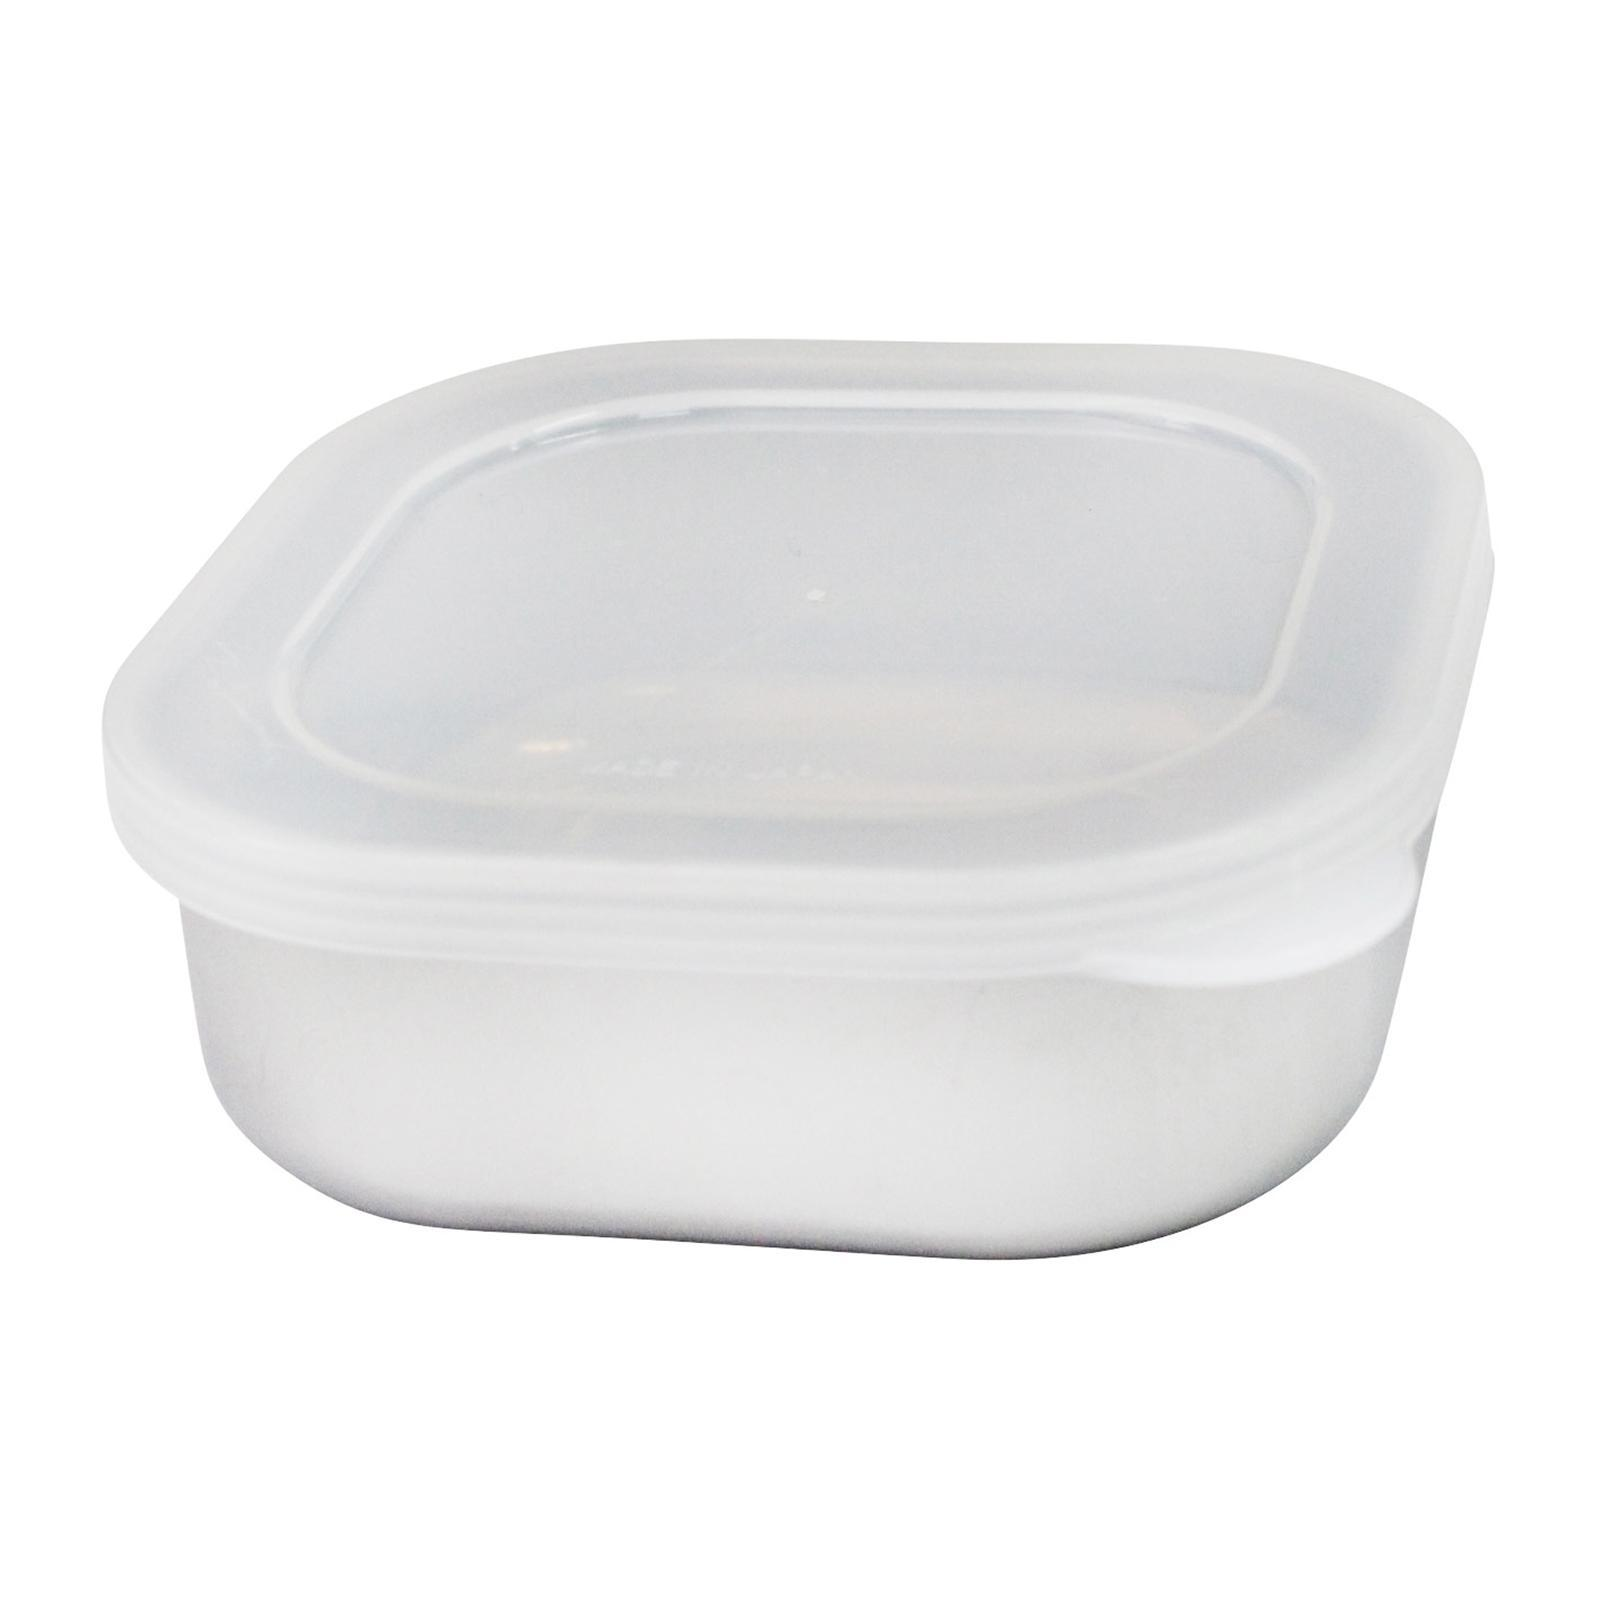 Echo Stainless Steel Food Storage Containers Bowl With Lid - Square 10x10x4(H) CM